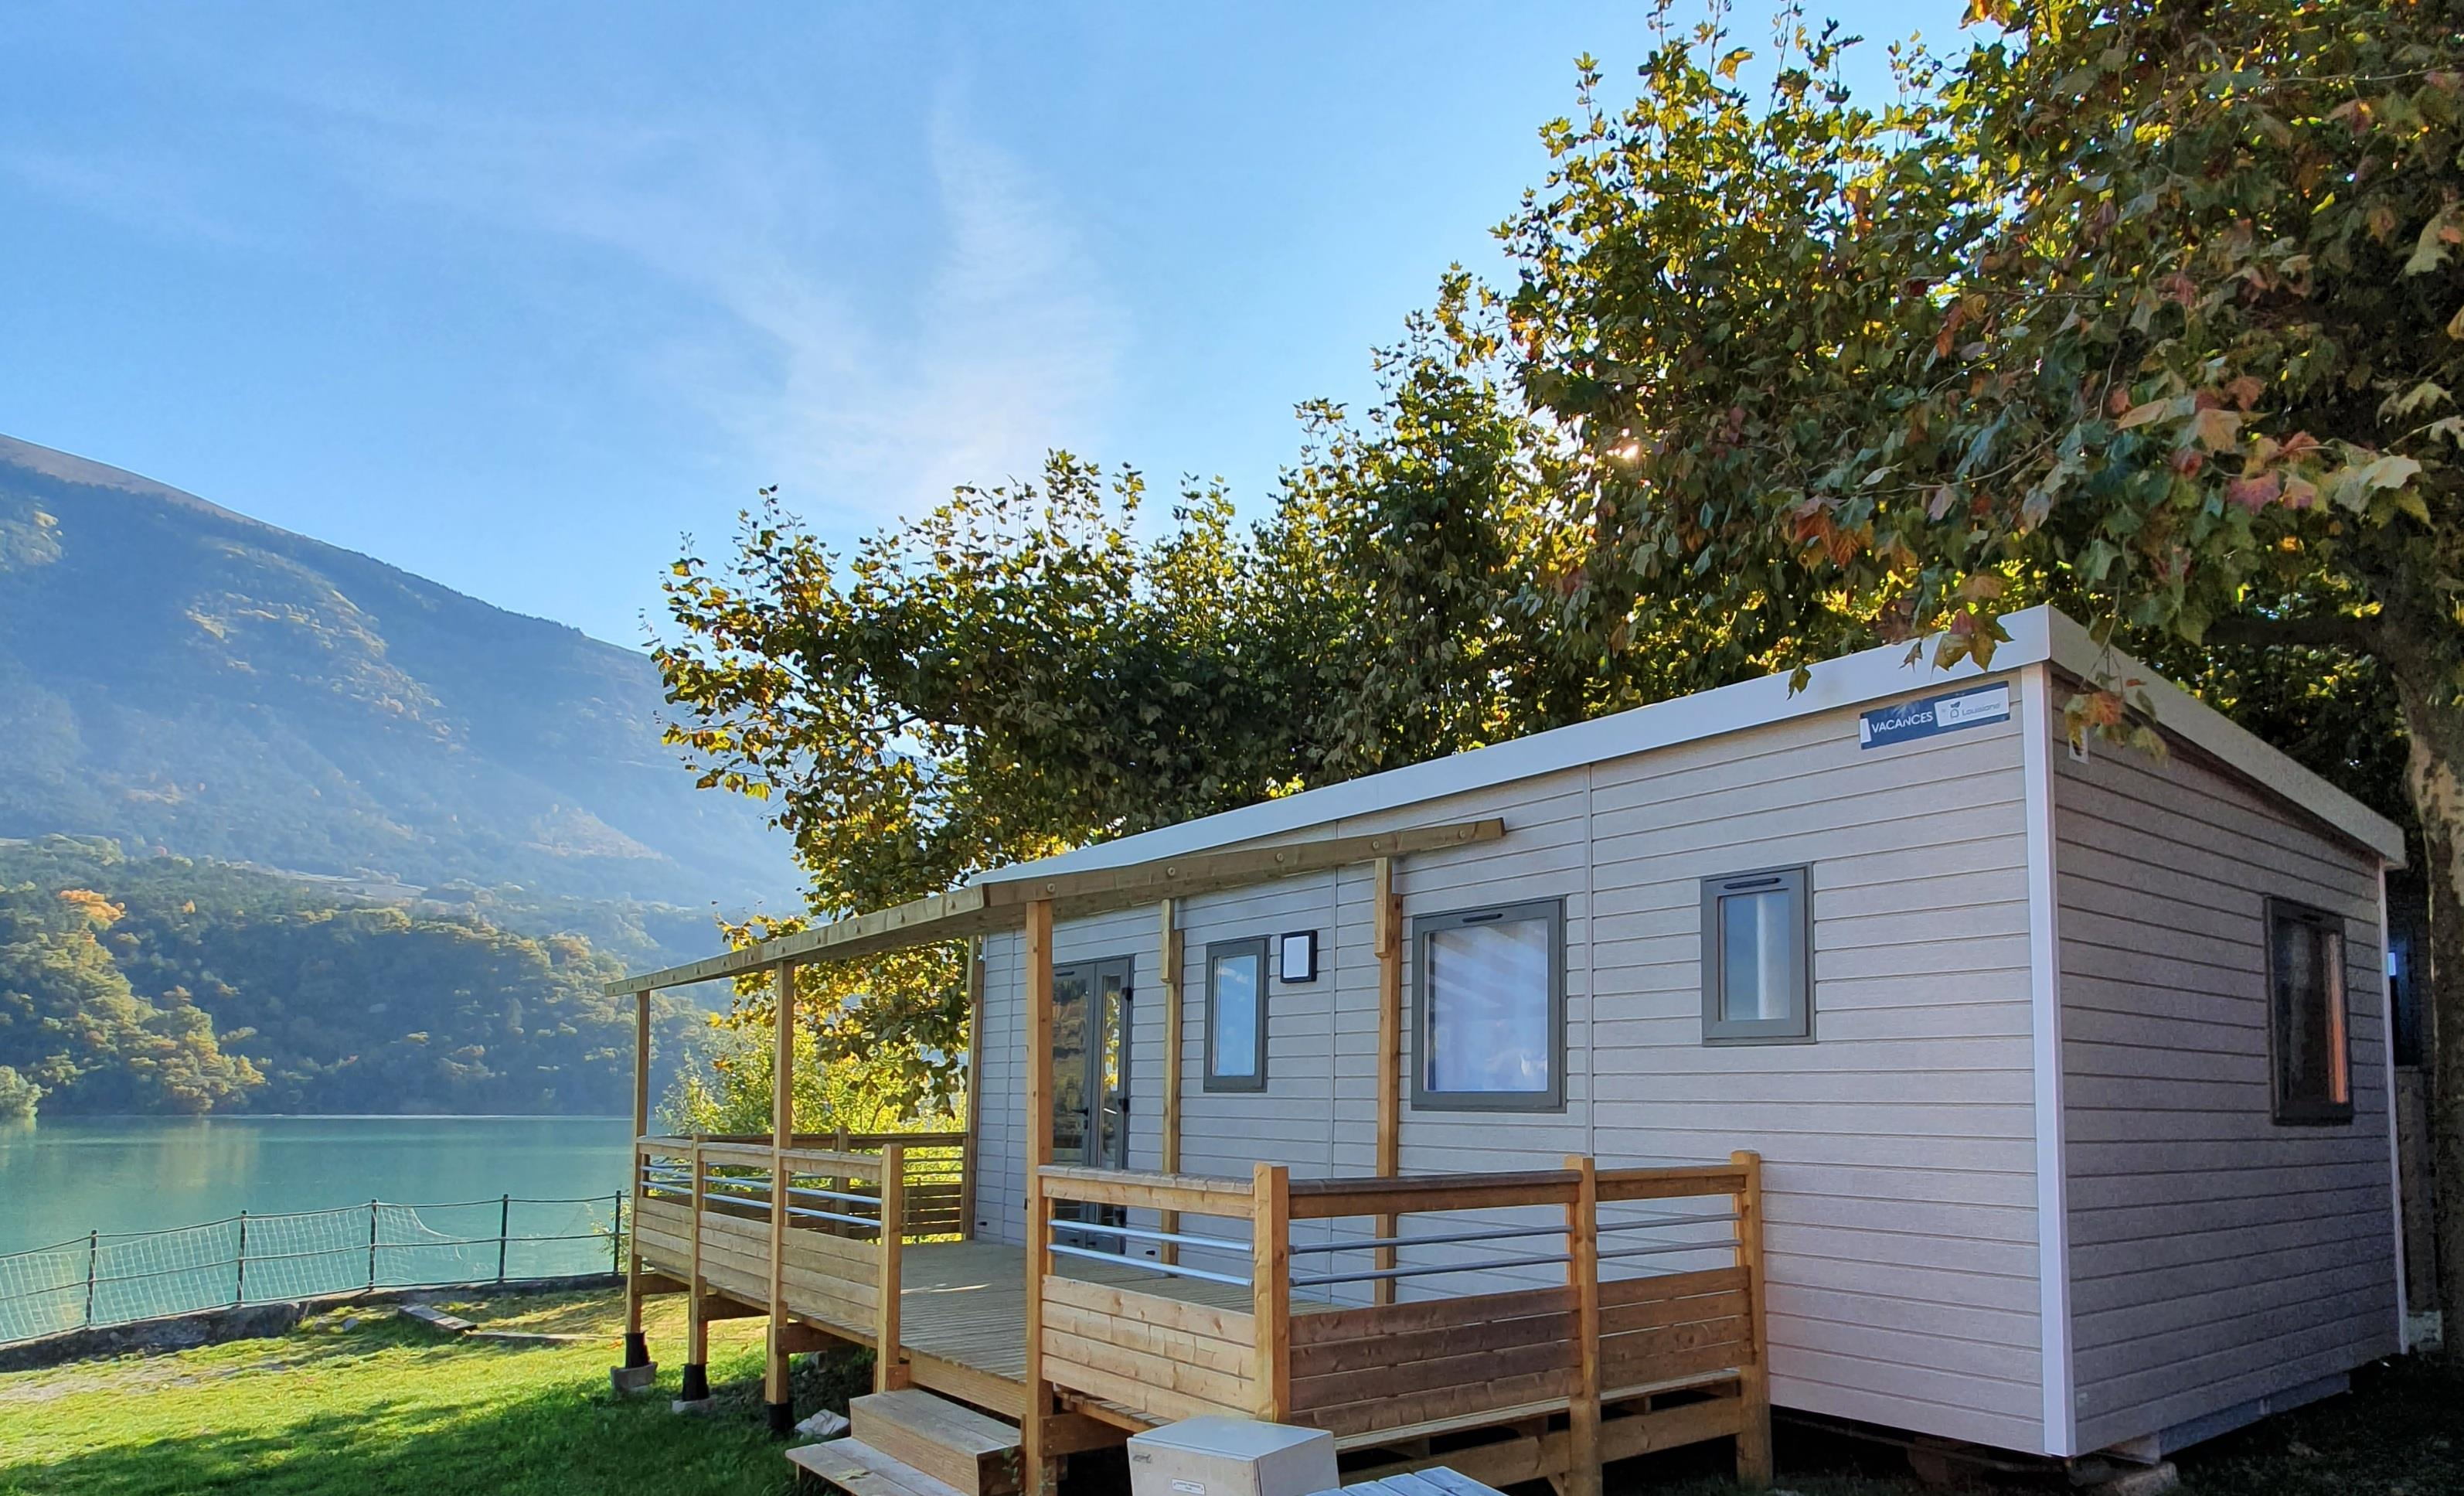 Accommodation - Mobil Home Confort Louisiane Samoa 2 Chambres Bord Du Lac - Camping D'Herbelon